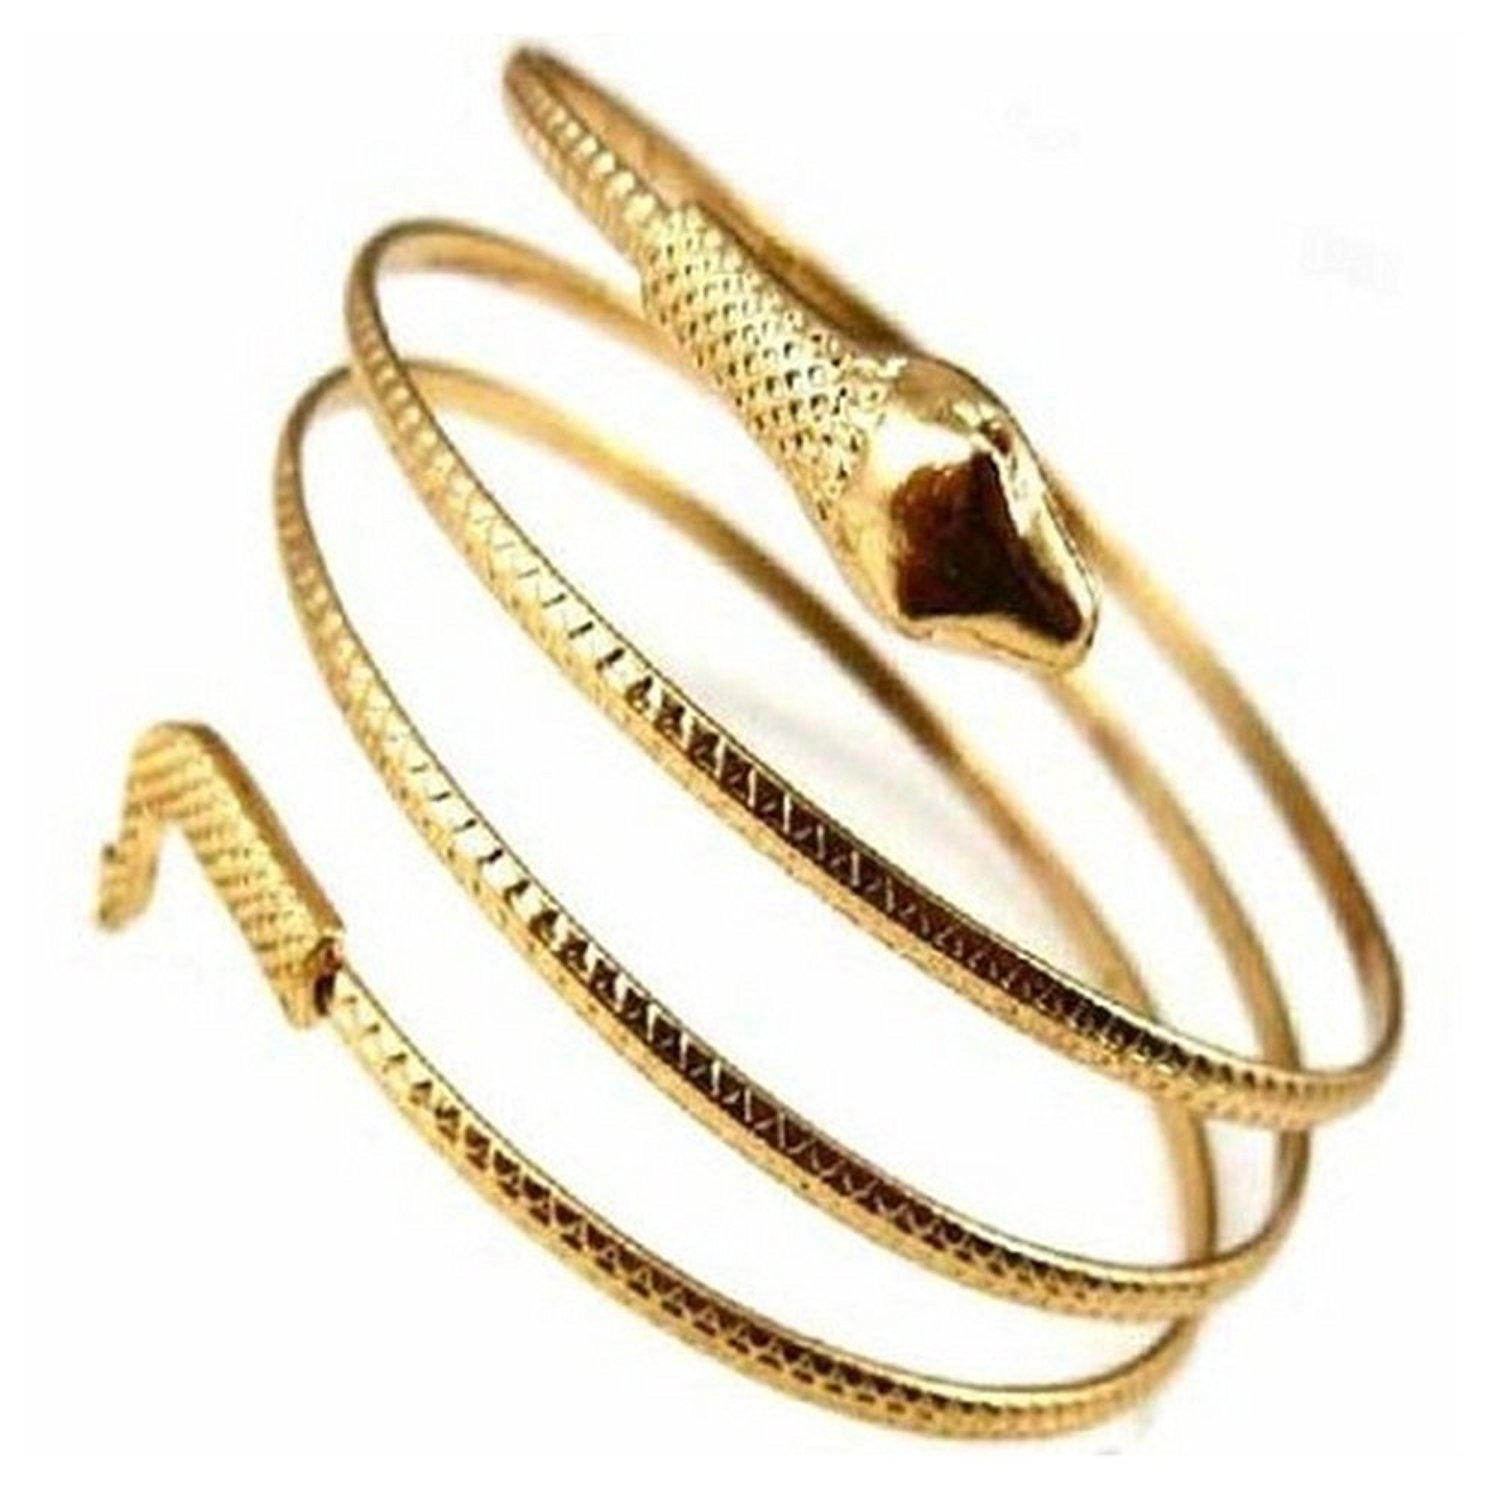 bangles from new for designer pulseiras charms gold type women color bangle bracelet product bride wedding